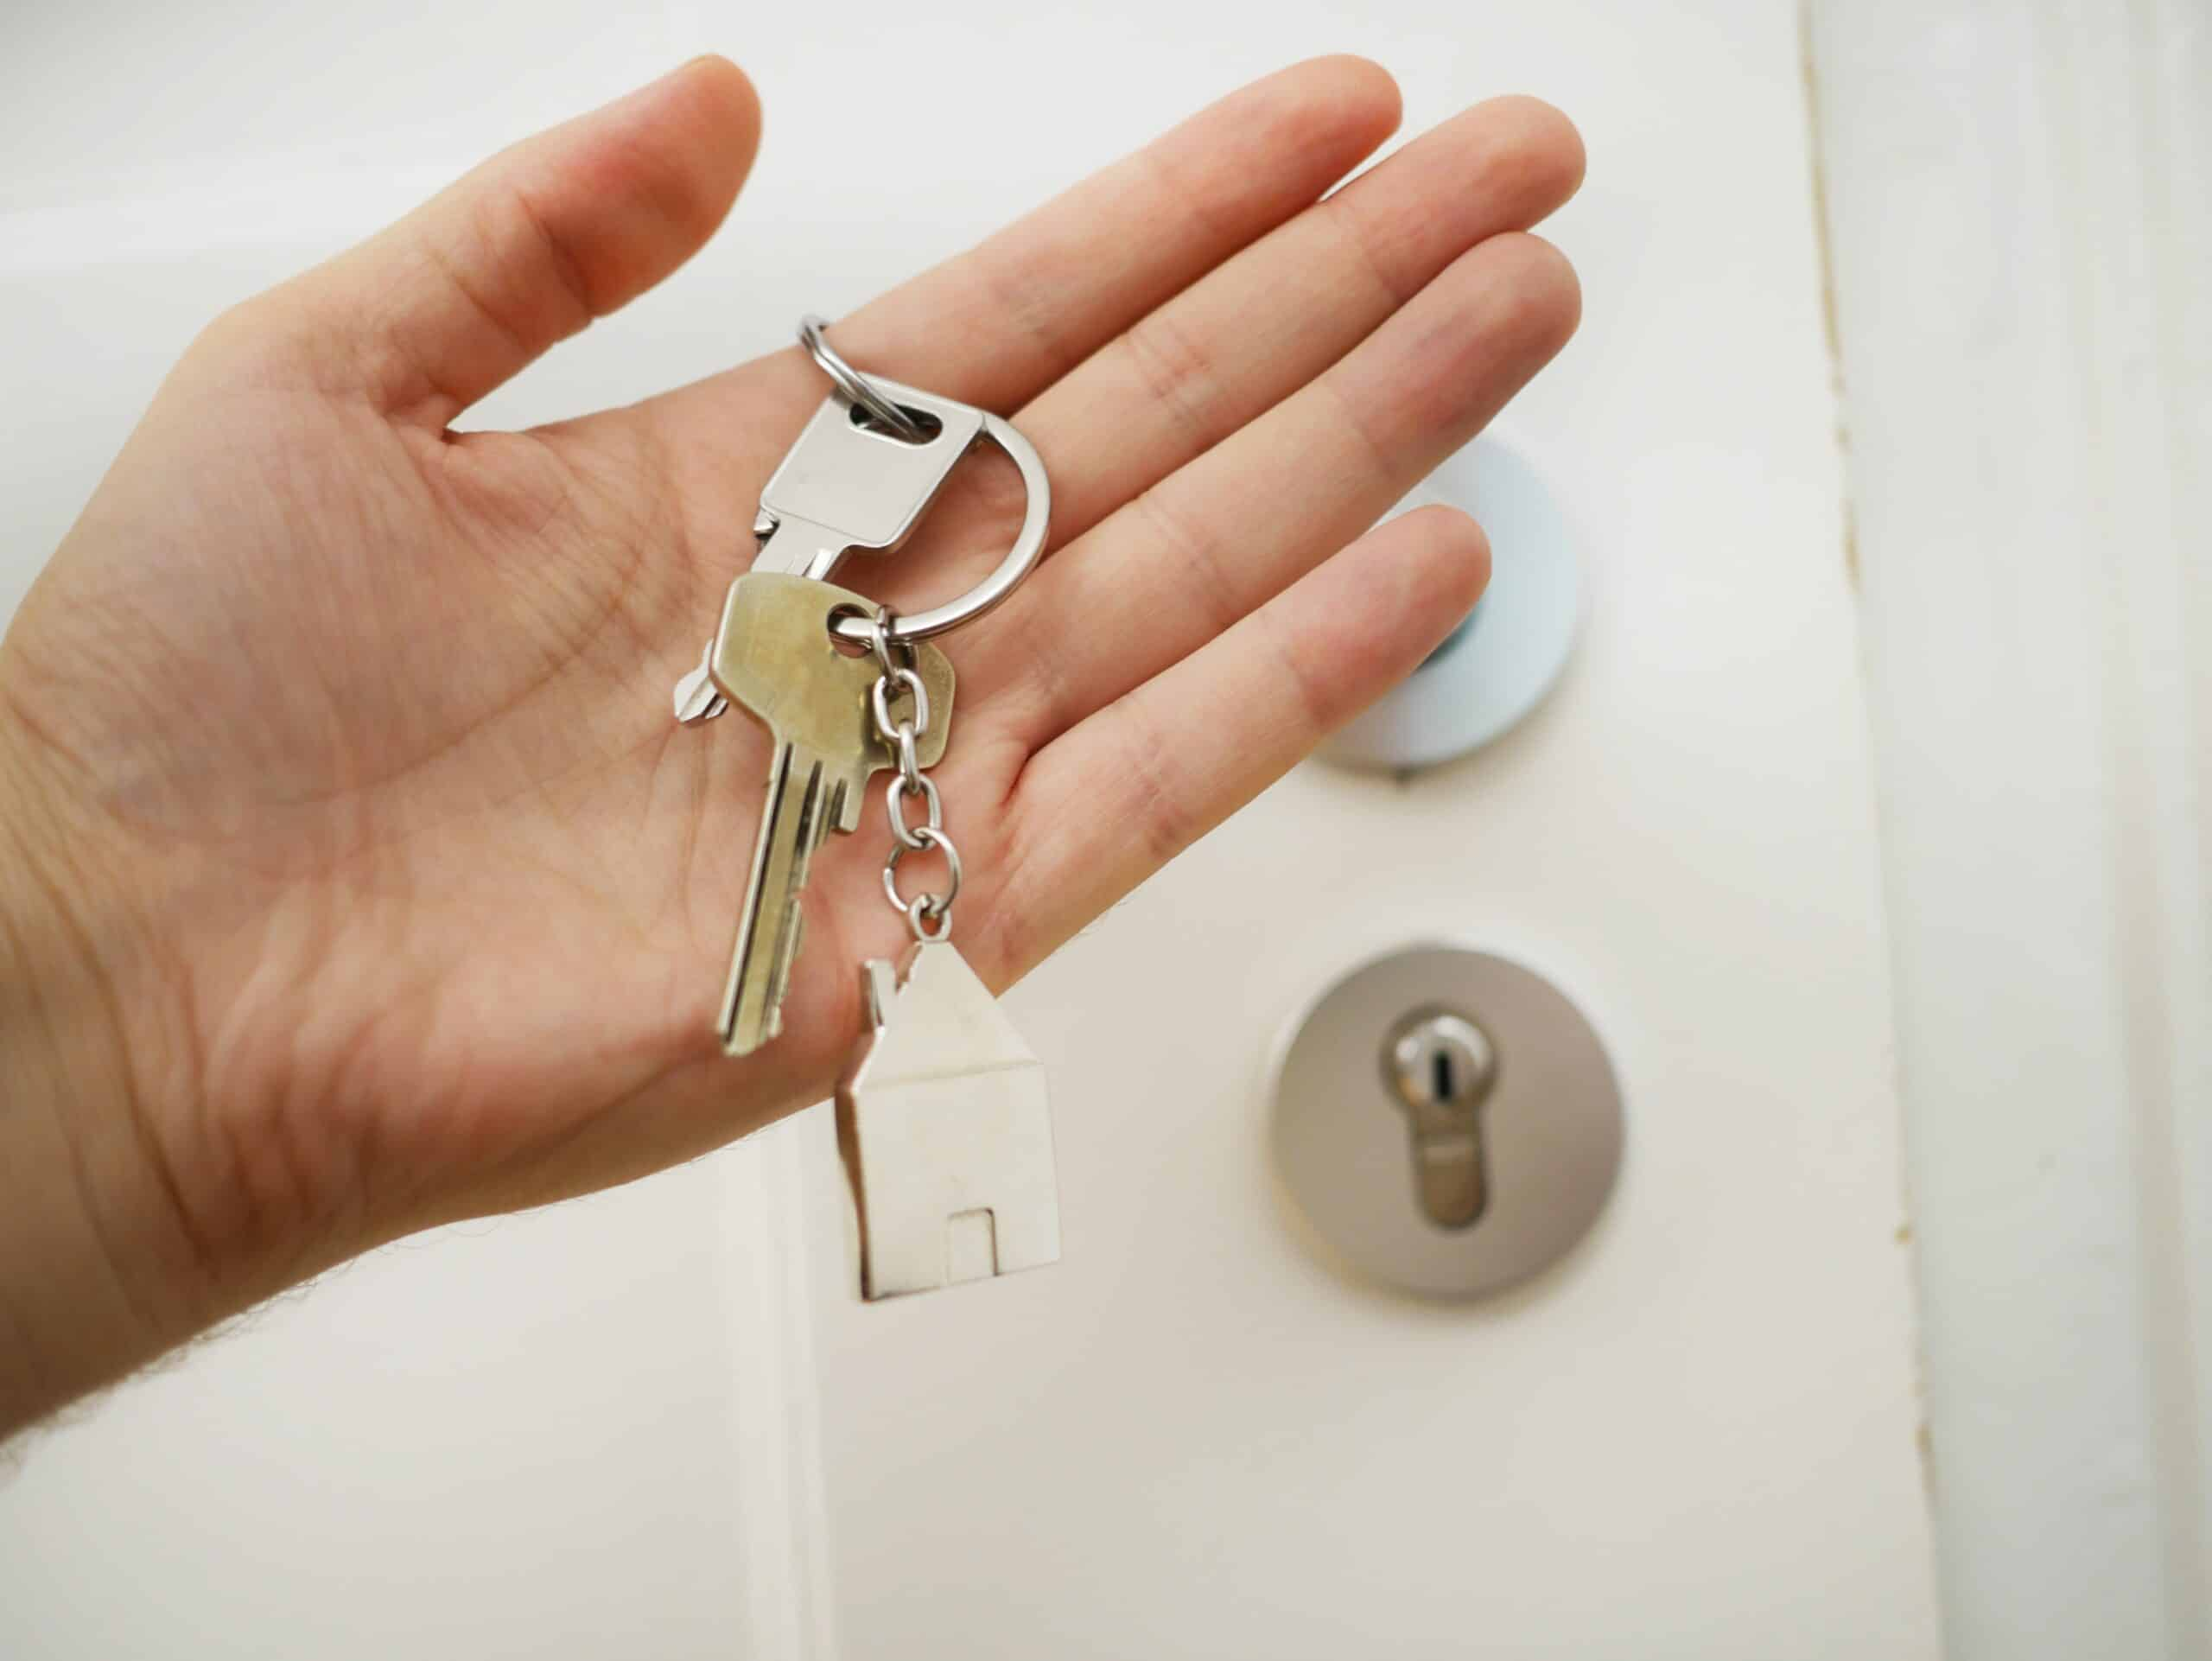 Home Keys - Buying a Condo in Singapore 2021